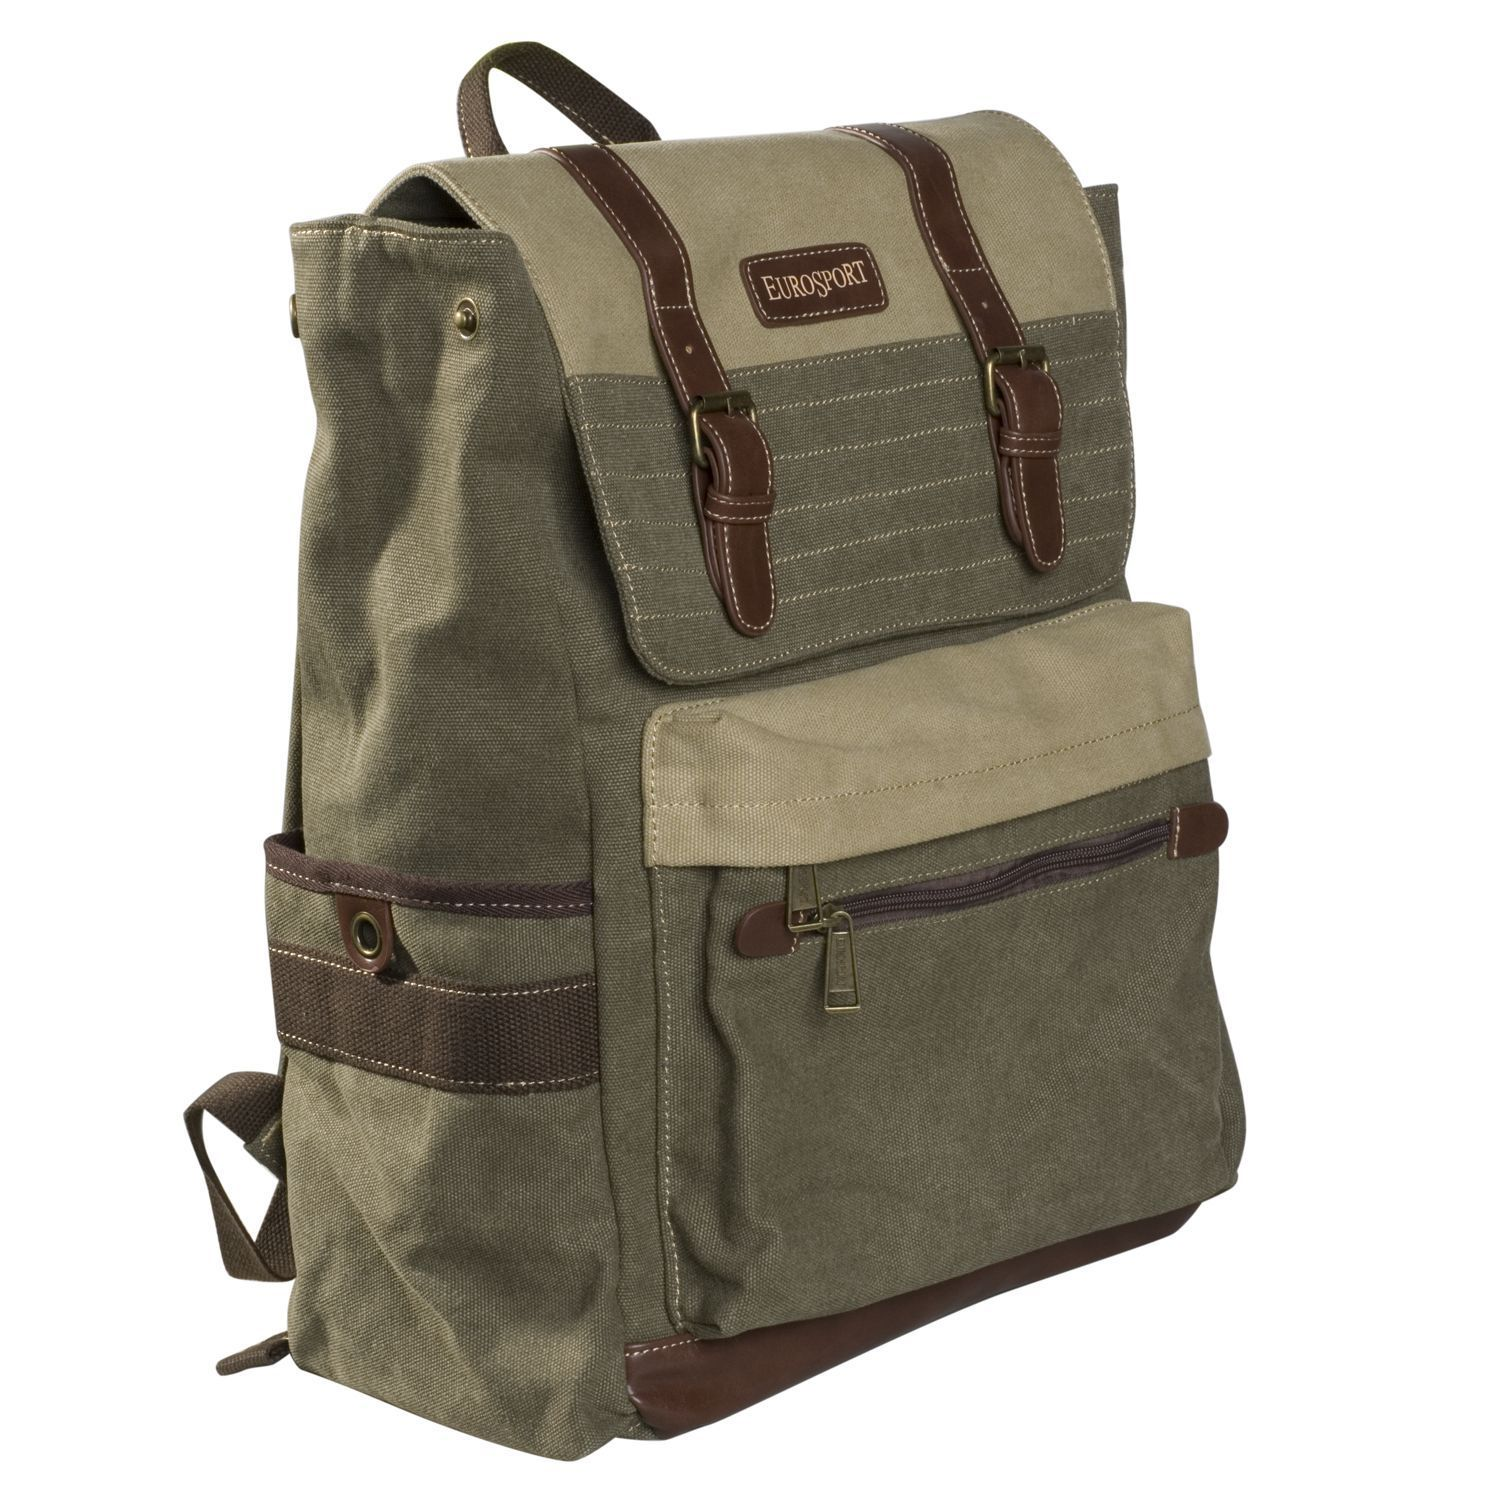 70bf1e731172 Canvas Laptop Backpack by Eurosport | eBay | On the go lifestyle ...